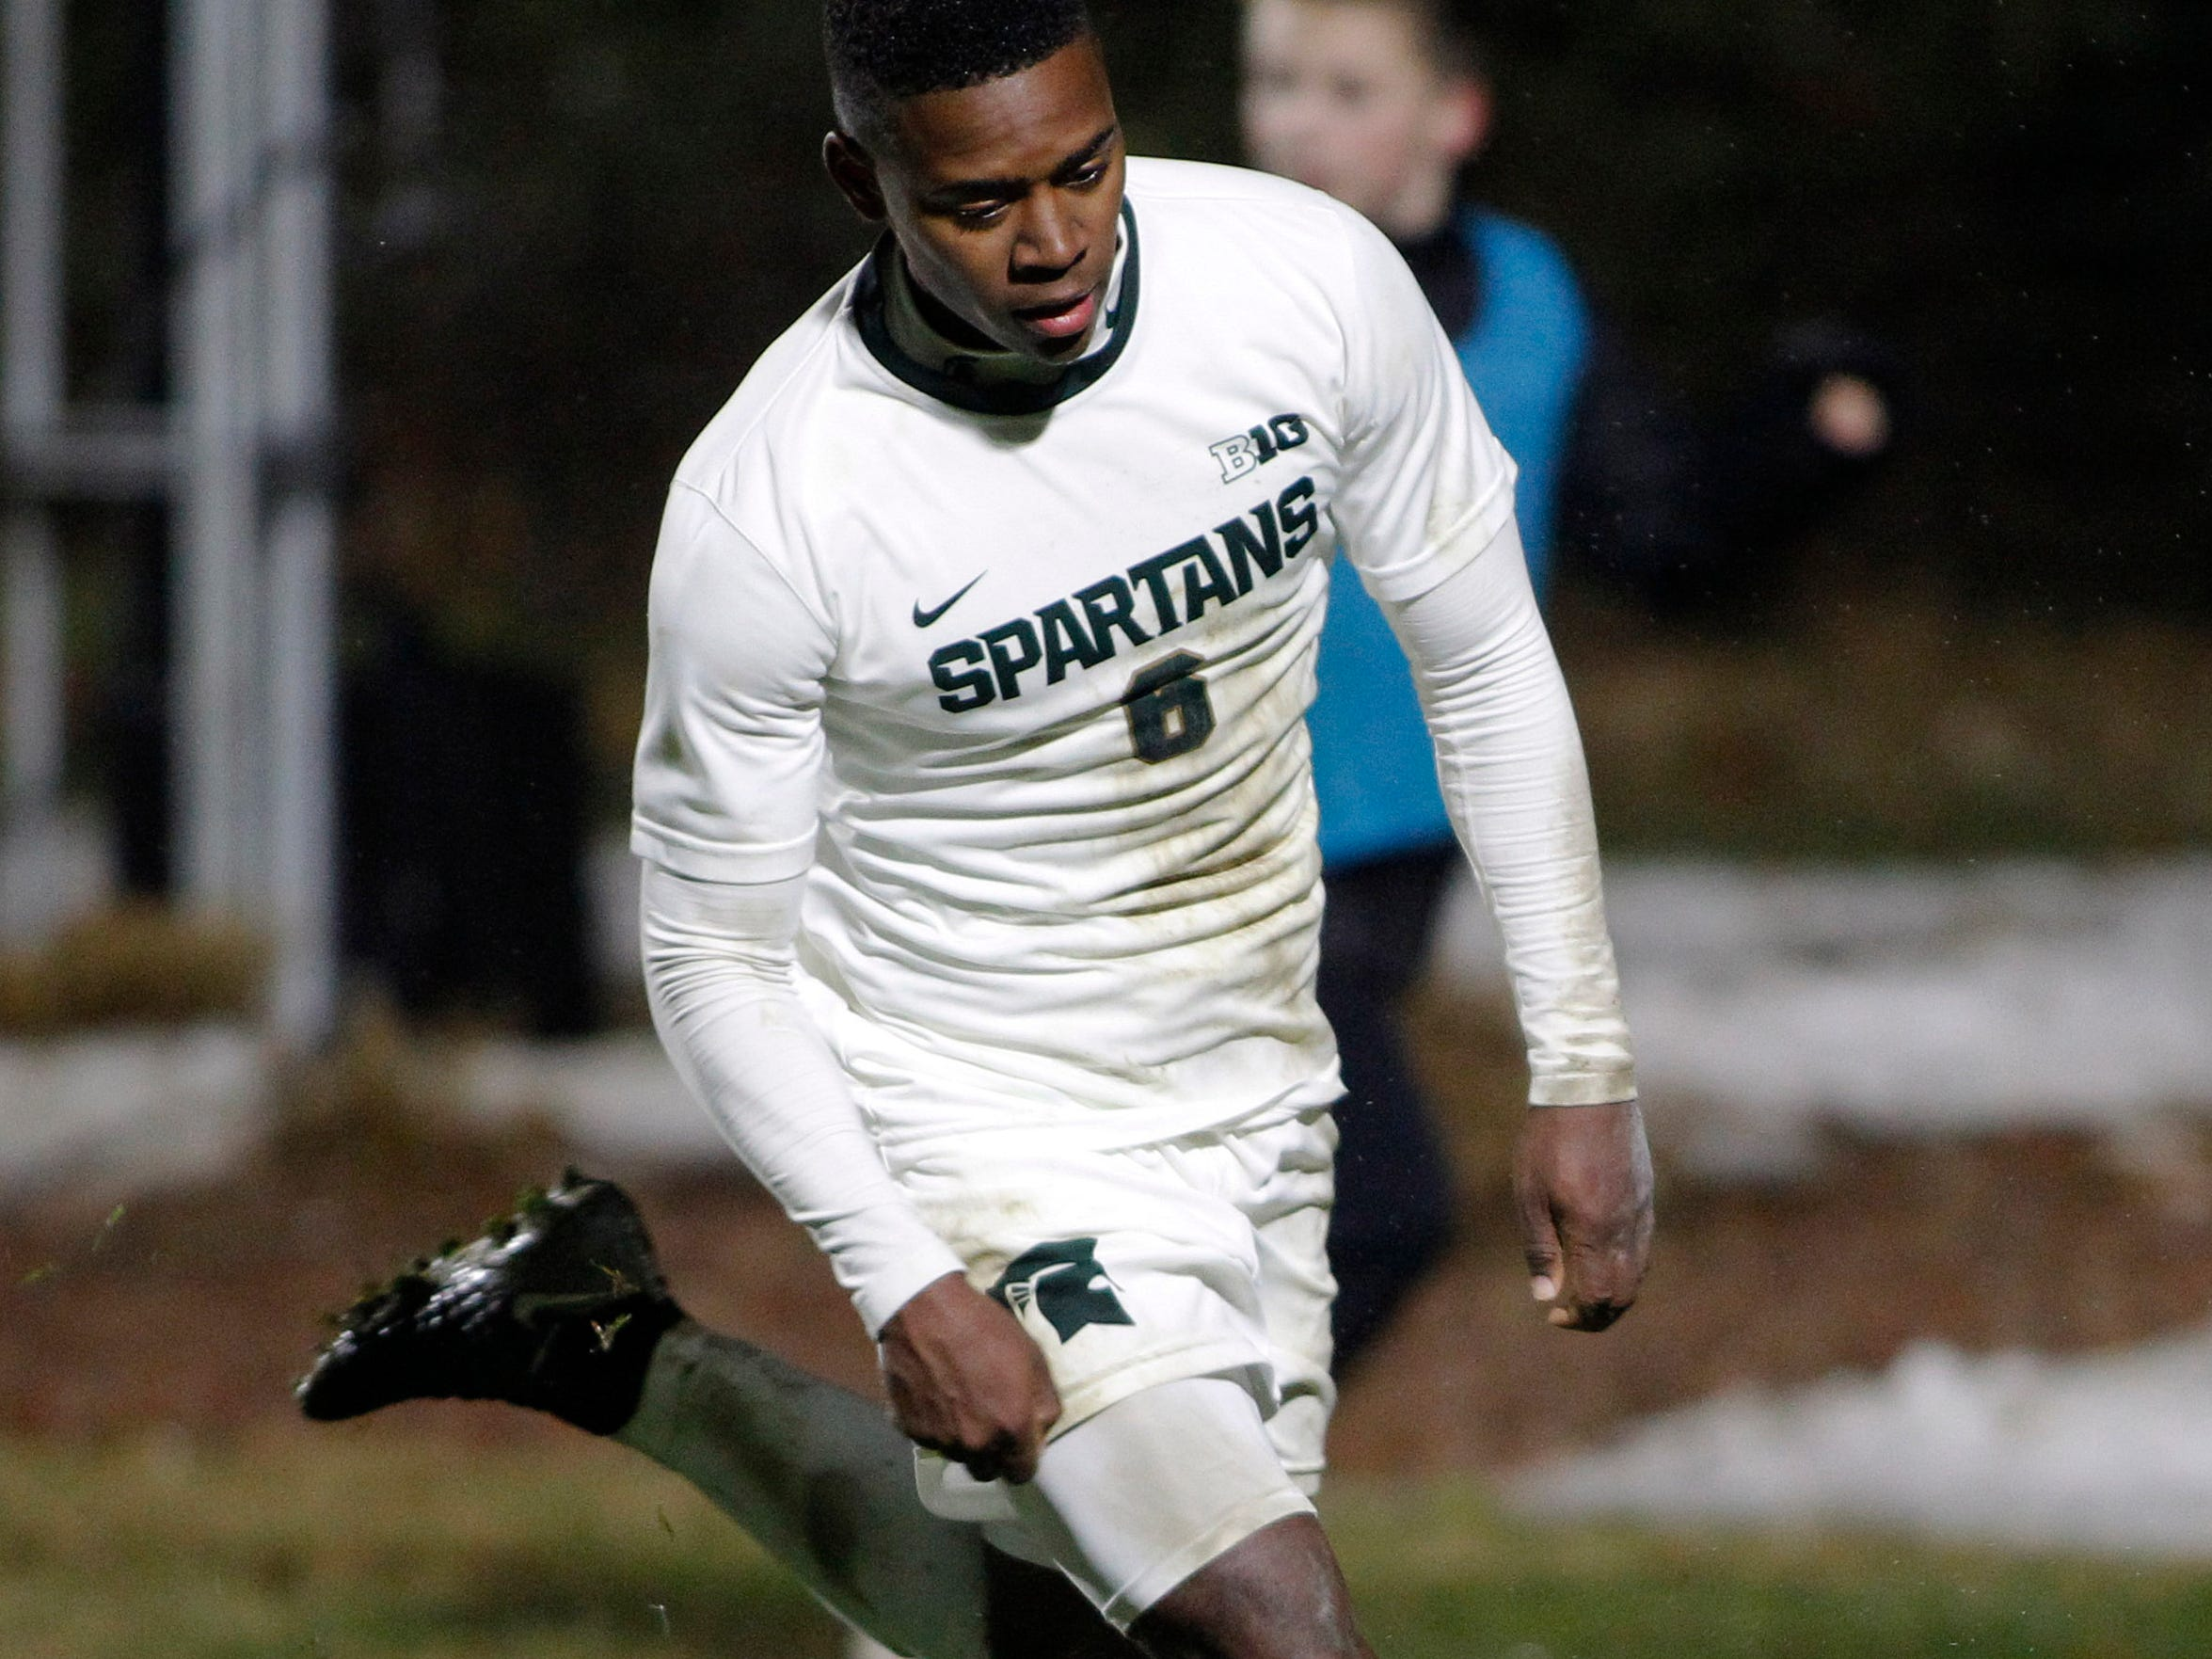 Michigan State's DeJuan Jones chases the ball against James Madison, Saturday, Dec. 1, 2018, in East Lansing, Mich. Michigan State won 2-1.